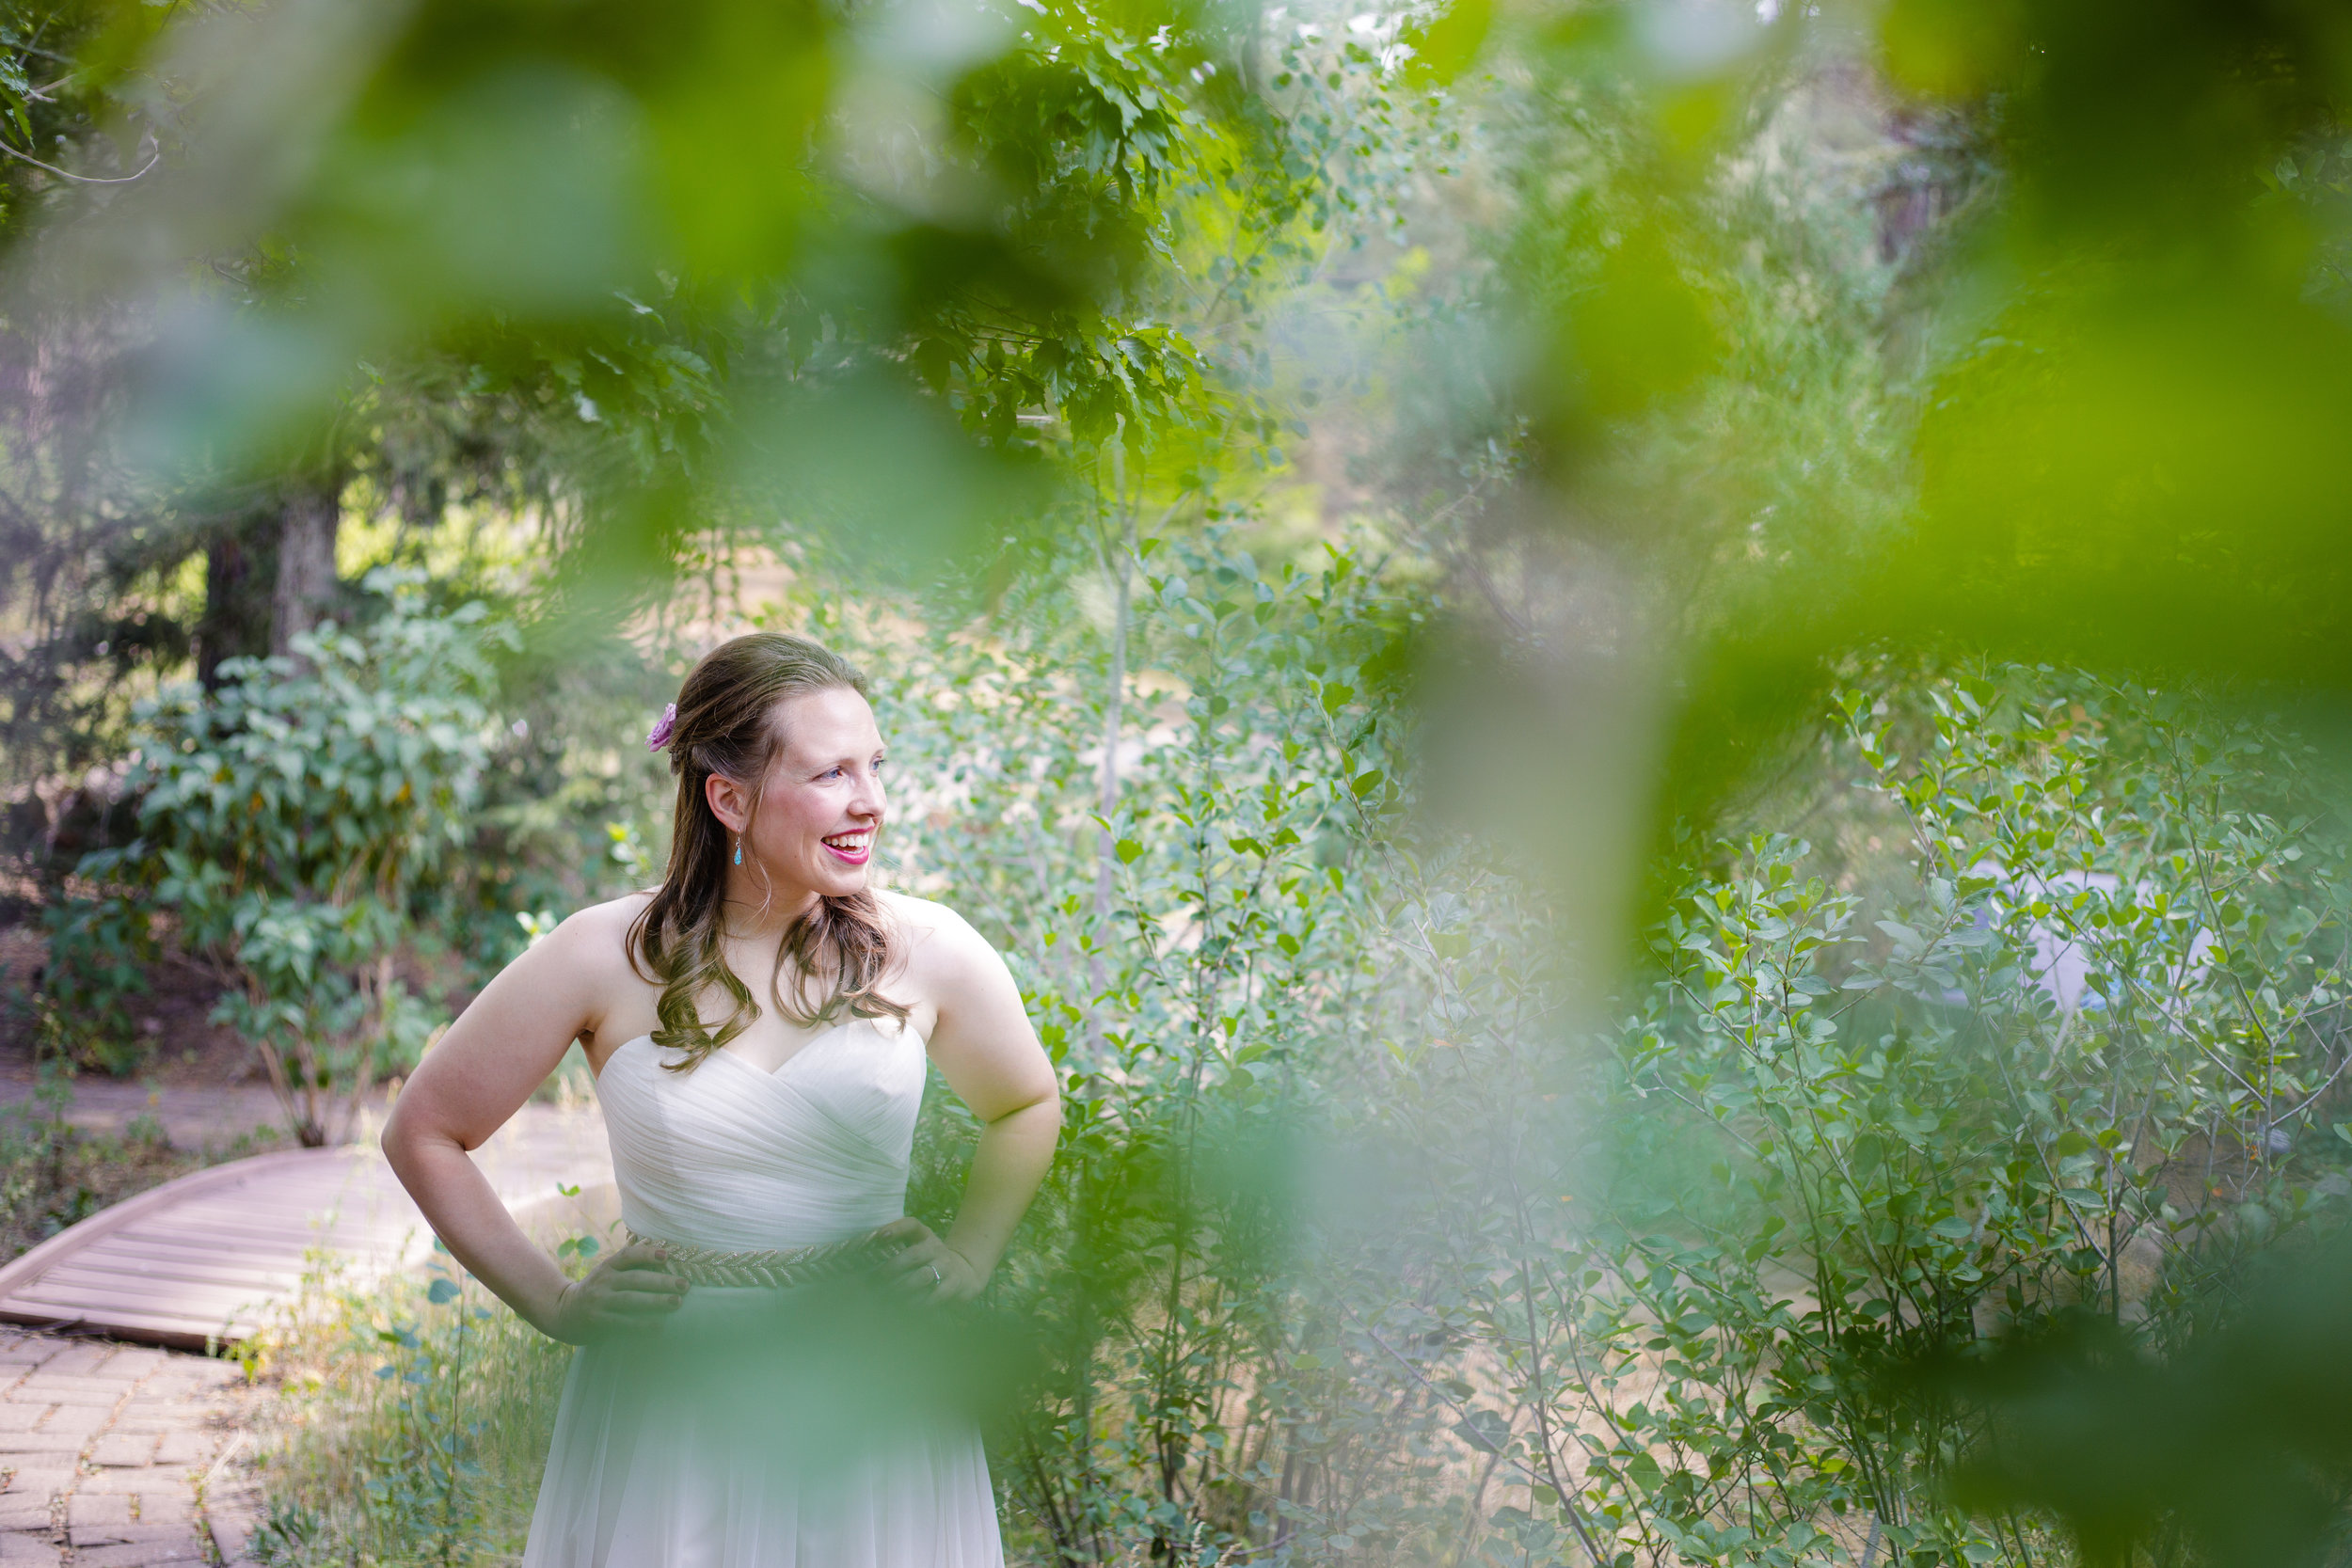 the-arboretum-at-flagstaff-wedding-11.jpg